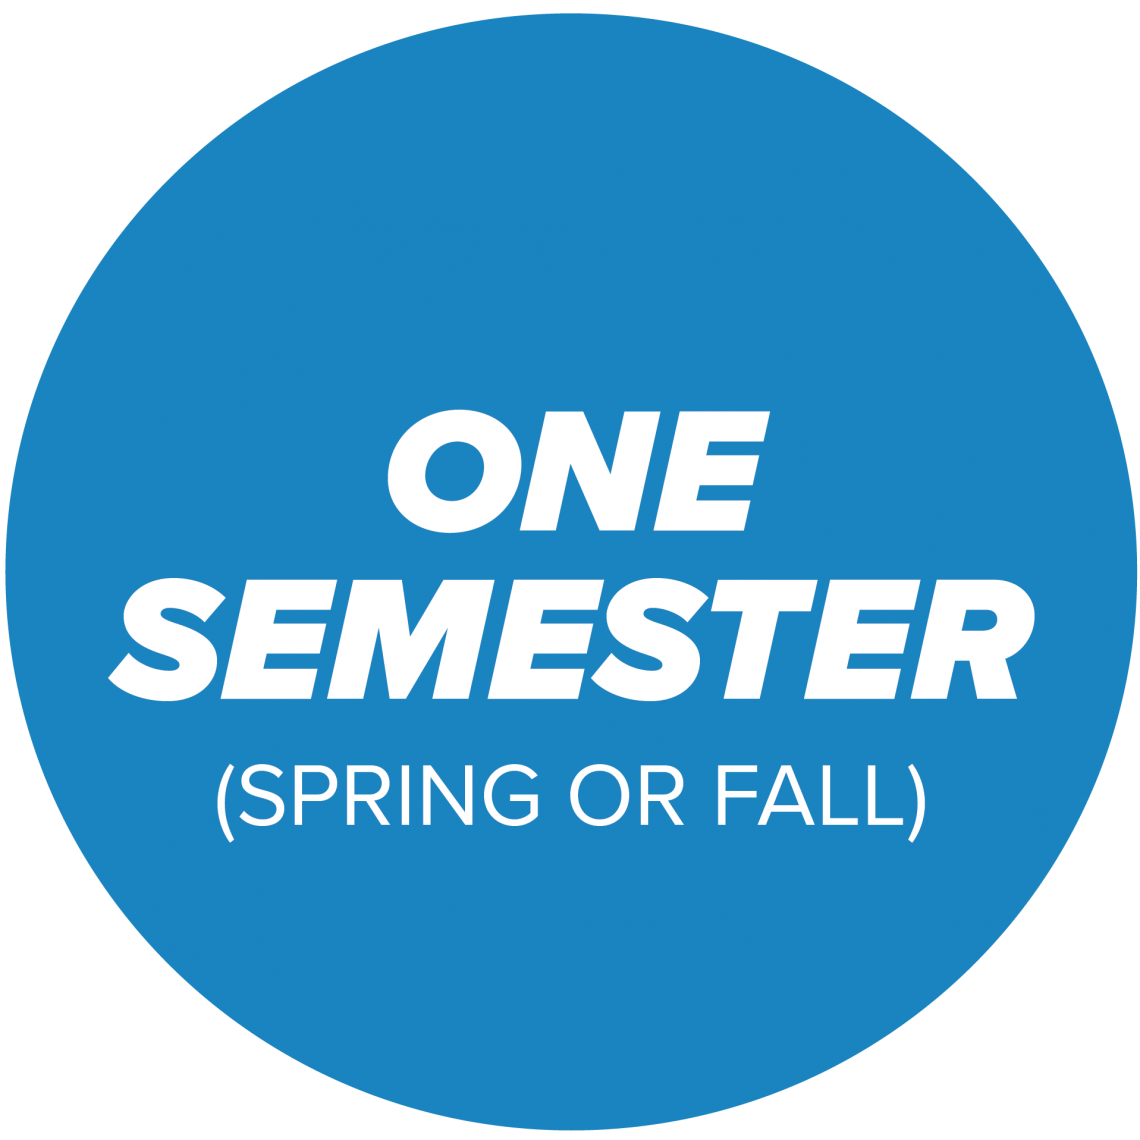 for fall or spring semester option